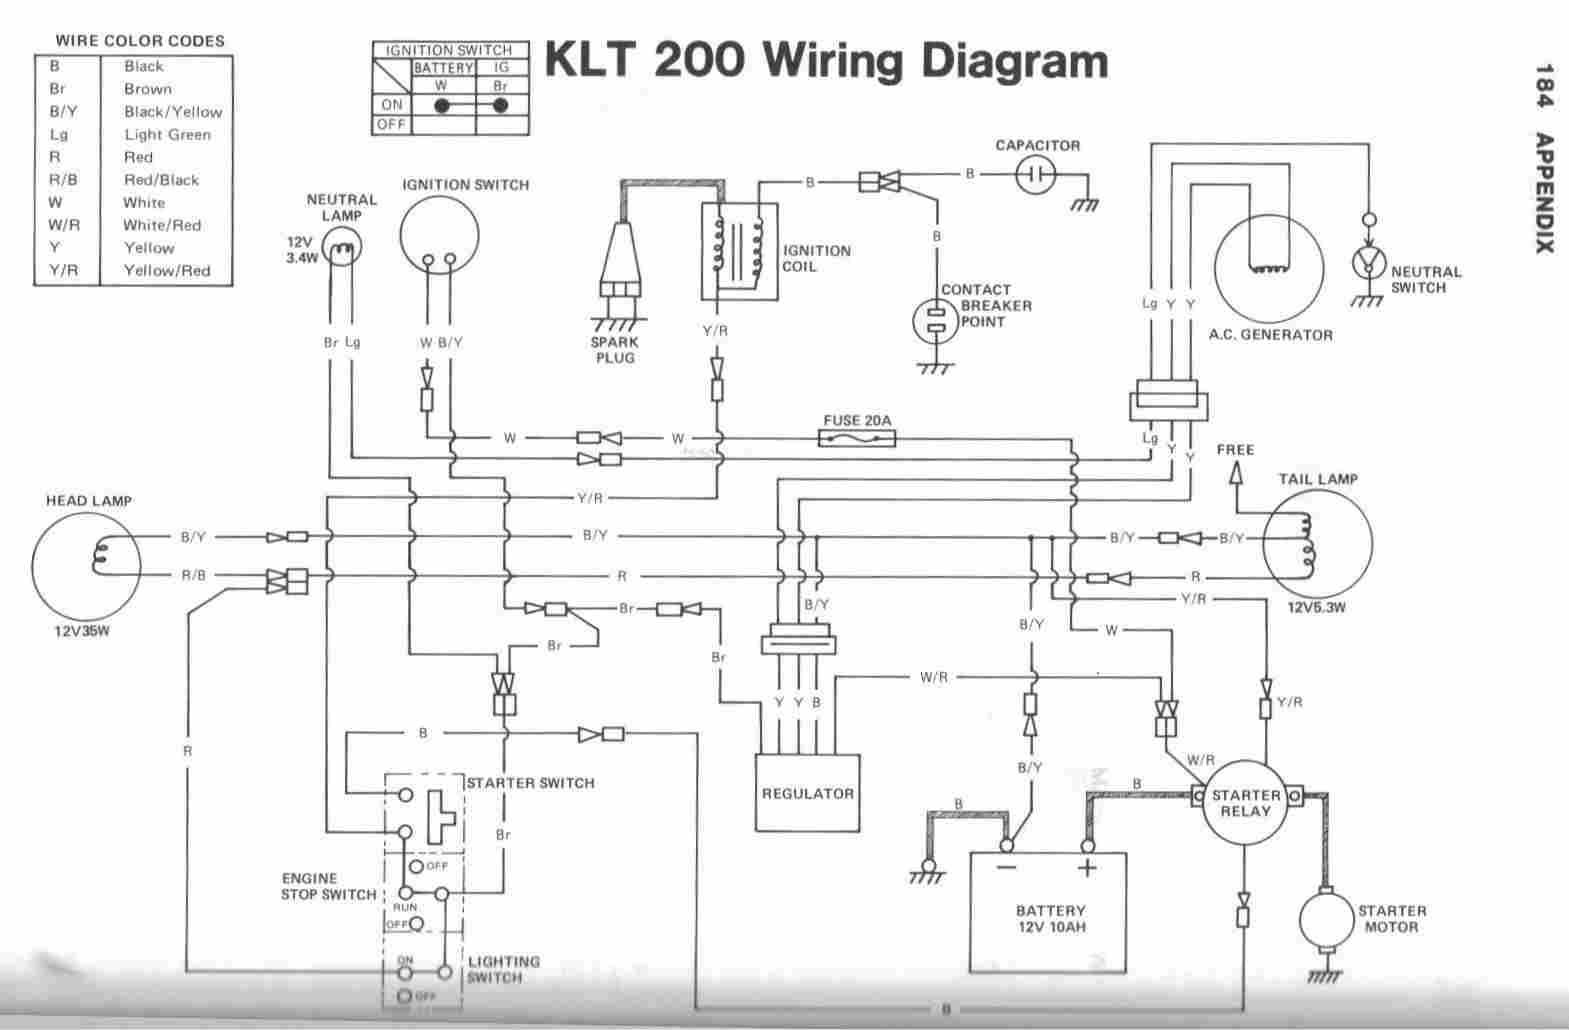 Wiring Diagram For Residential : Residential electrical wiring diagrams pdf easy routing